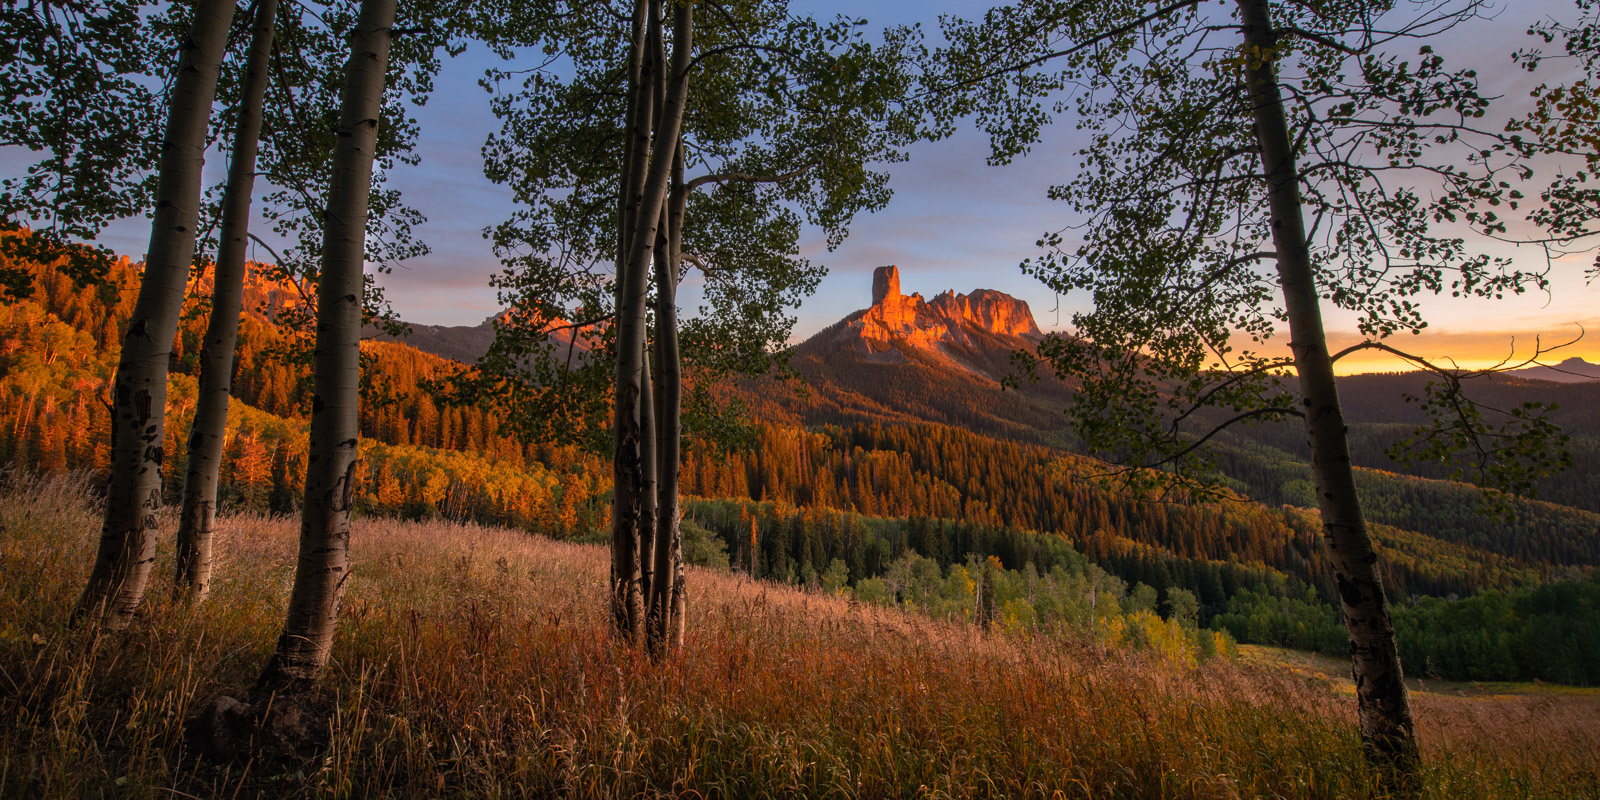 Chimney Rock captured from uniquely high vantage point ion the San Juan Mountains of Colorado.